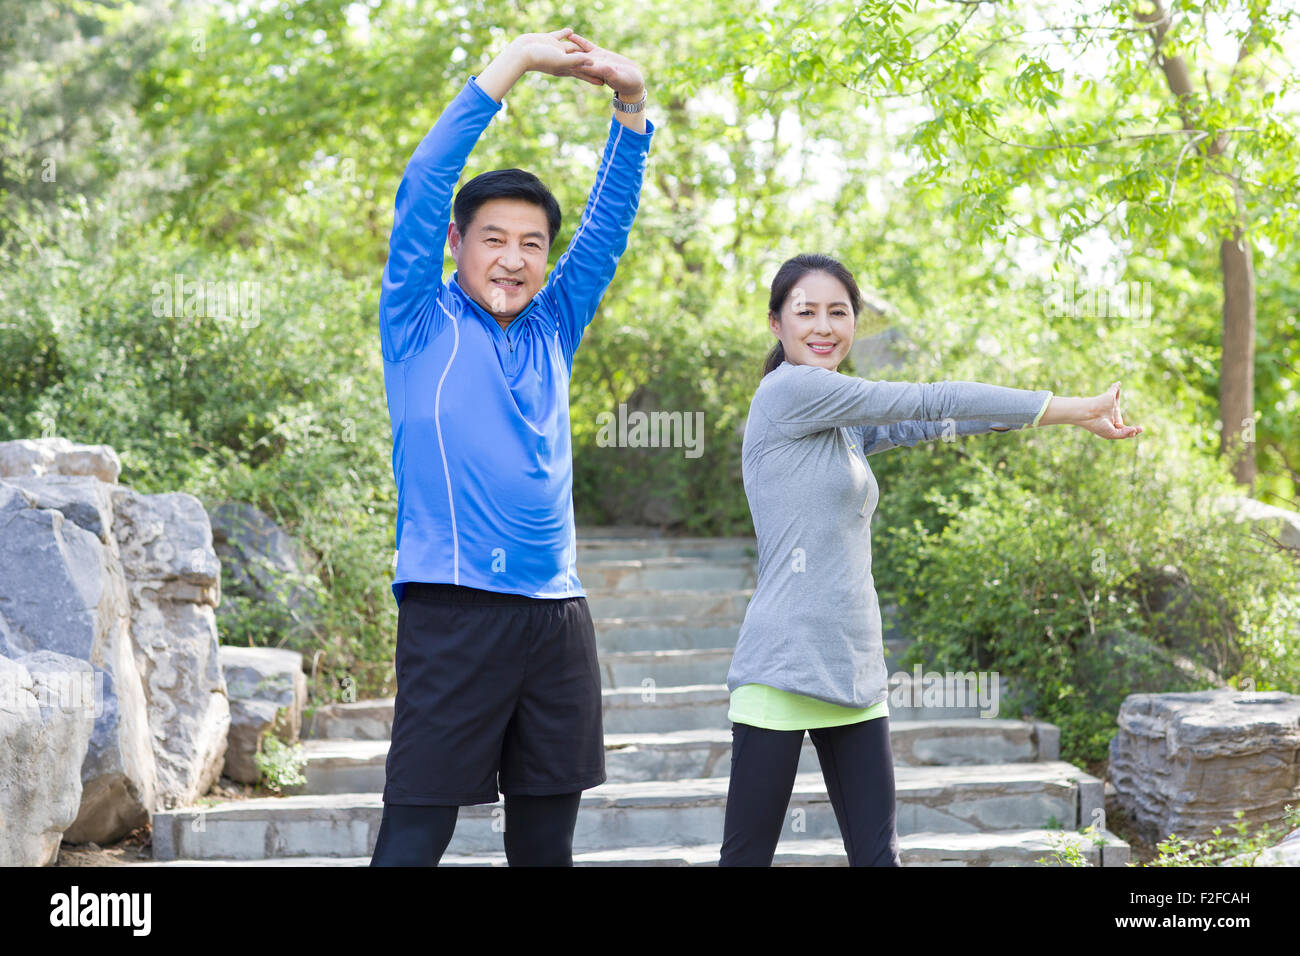 Happy mature couple exercising in park - Stock Image